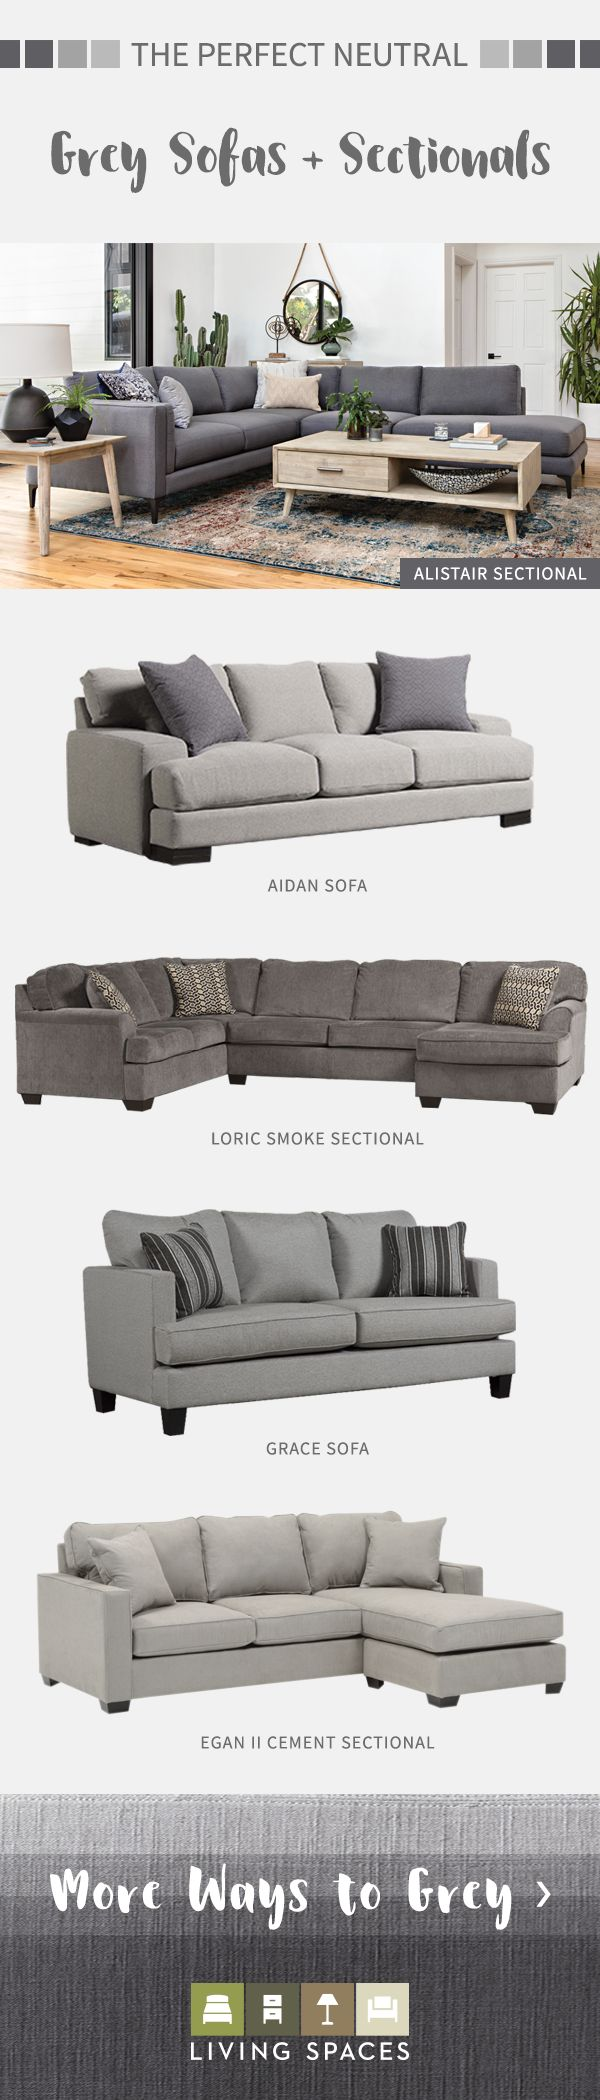 Grey sofas & sectional sofas are the perfect neutral piece for any living room.  From light grey to charcoal, browse sofa and sectional options in every shade of grey.